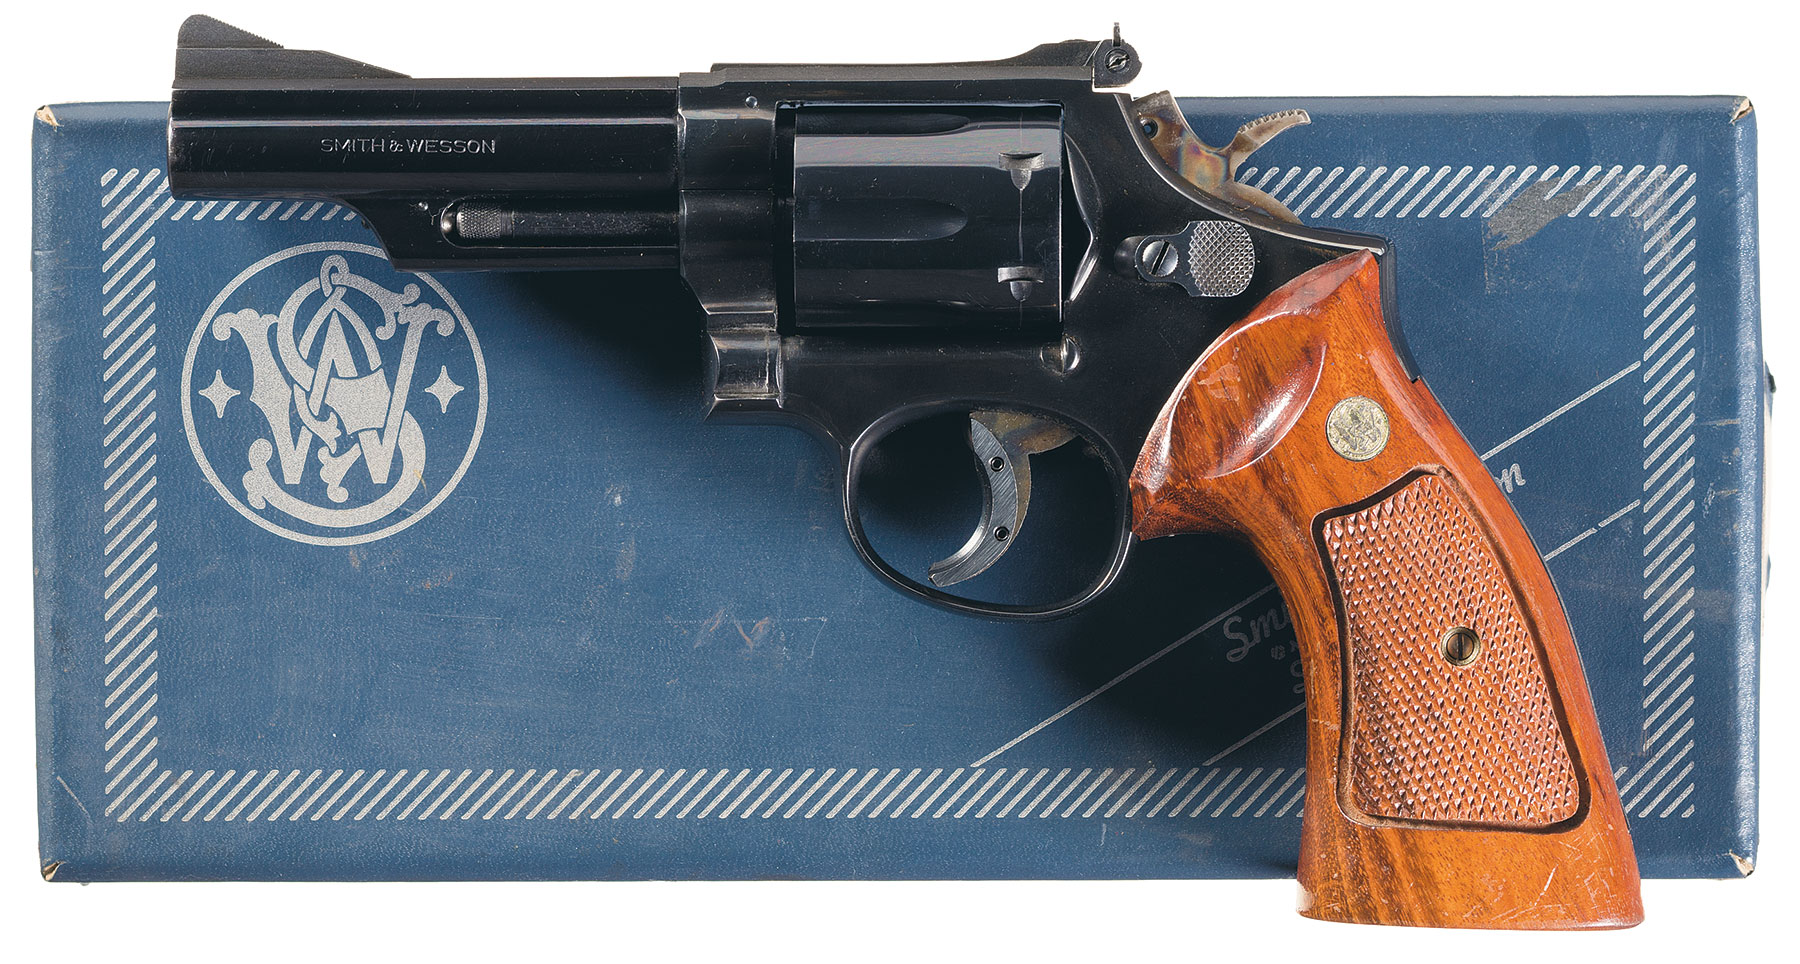 smith and wesson model 19-3 serial numbers